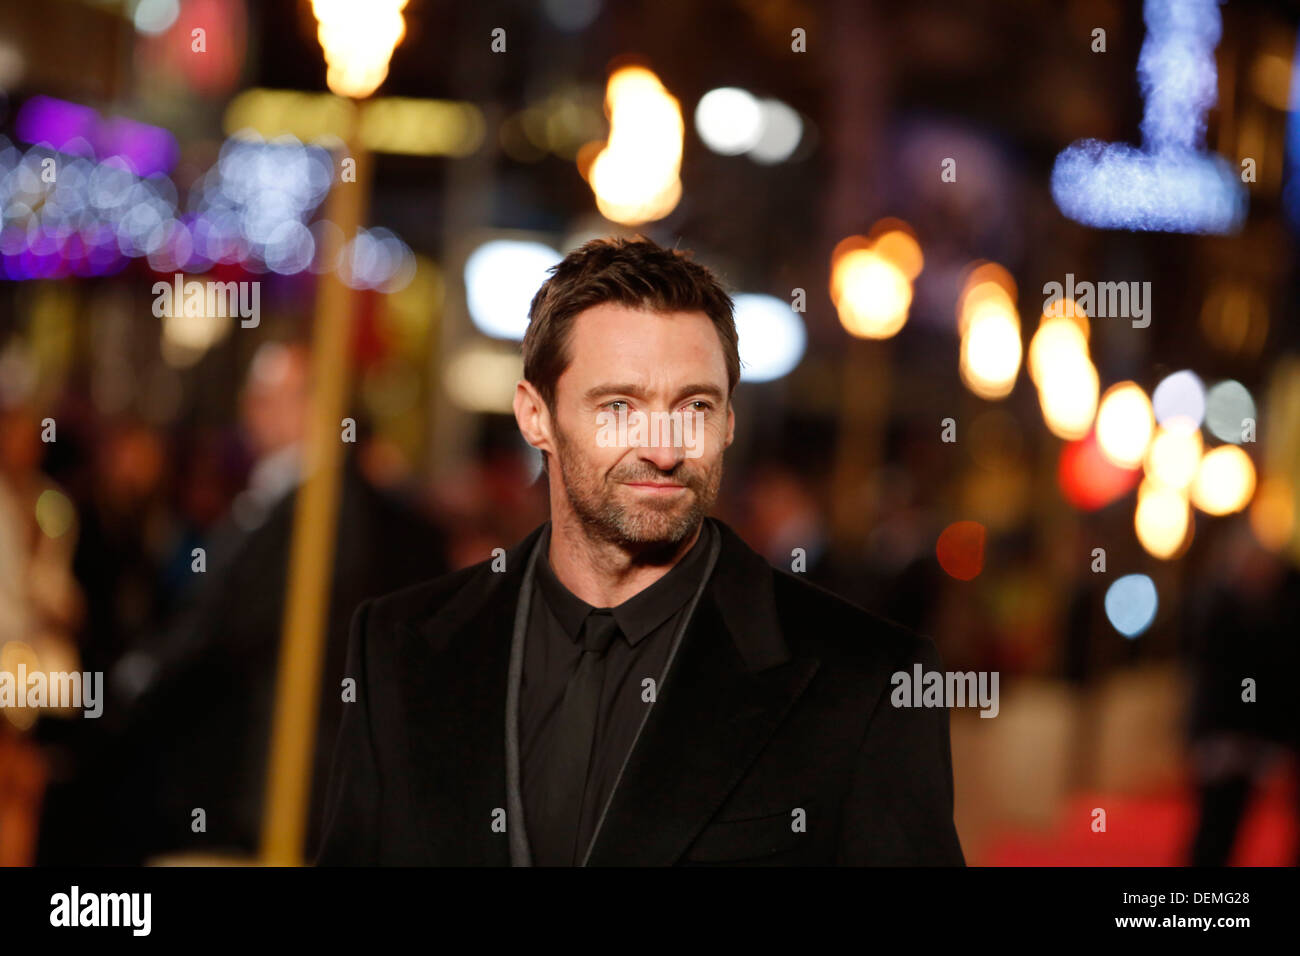 Australian actor/cast member Hugh Jackman arrives for the world premiere of Les Miserables at The Odeon Leicester Square in Lond - Stock Image